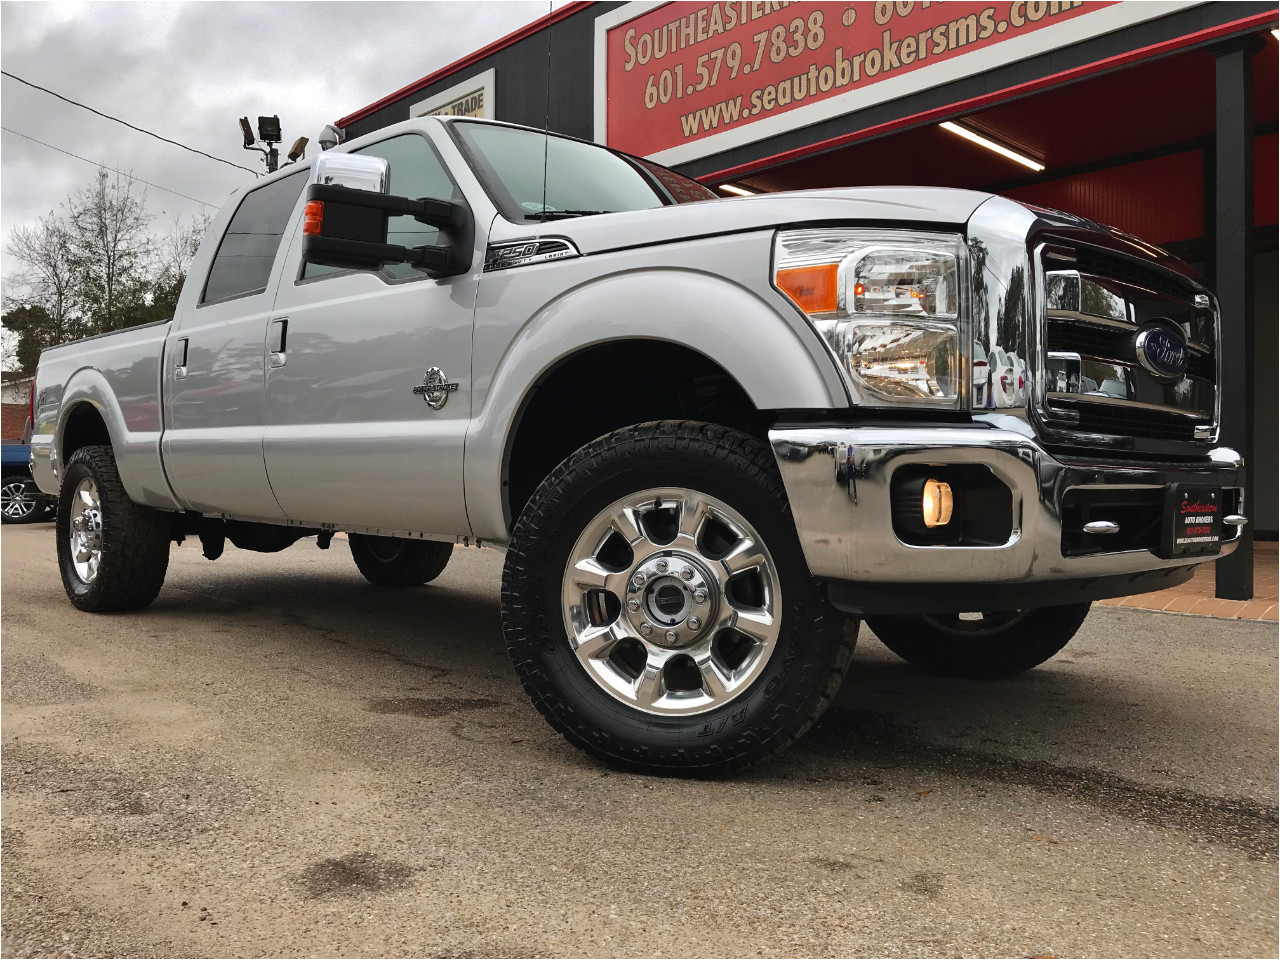 Tire Shop In Hattiesburg Ms Used 2014 ford F 250 Sd for Sale In Hattiesburg Ms 39402